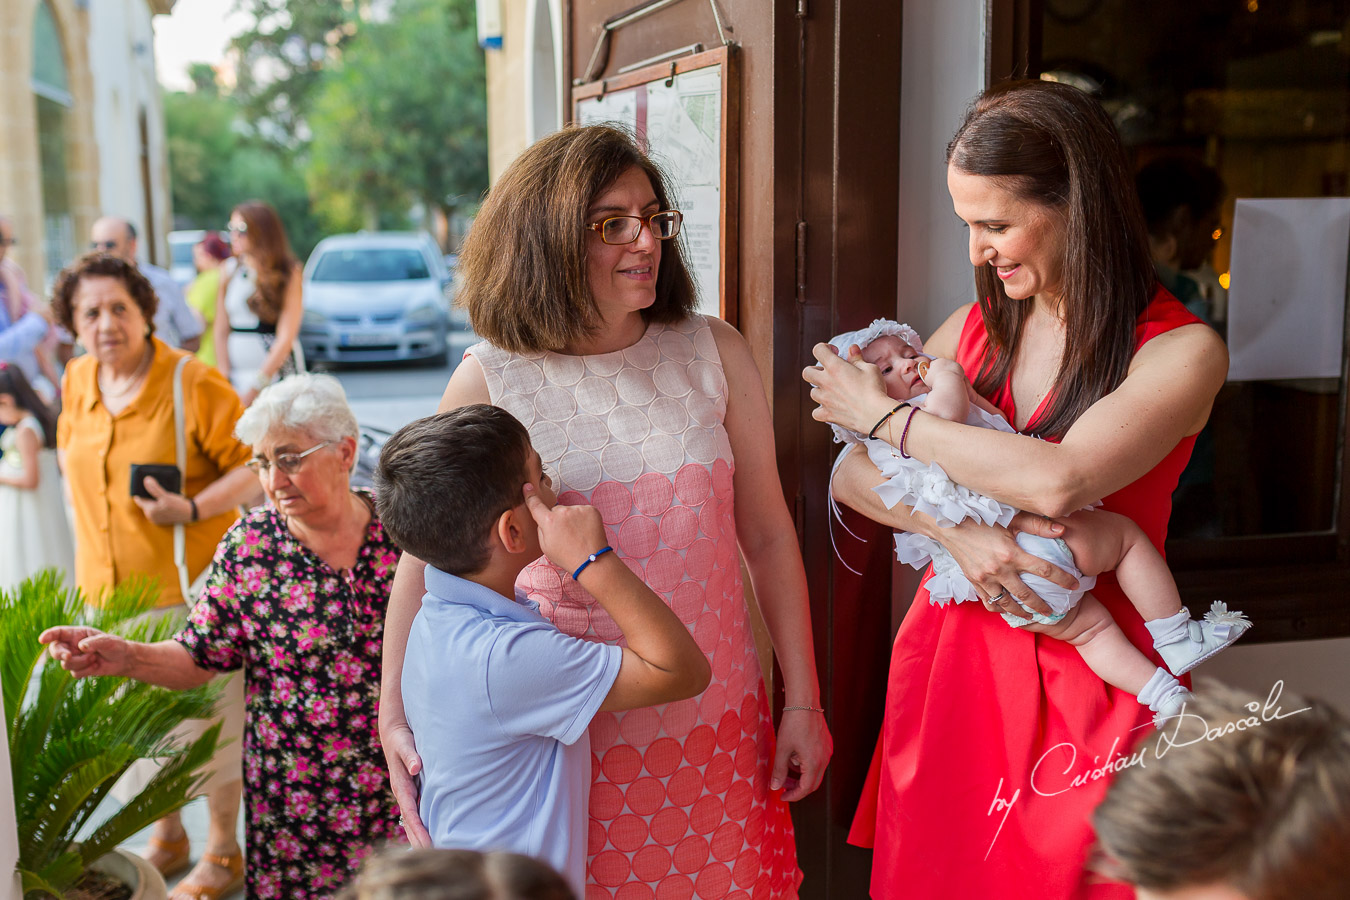 Baptism Photograher in Nicosia - Chrisanti's Christening by Cristian Dascalu - 27